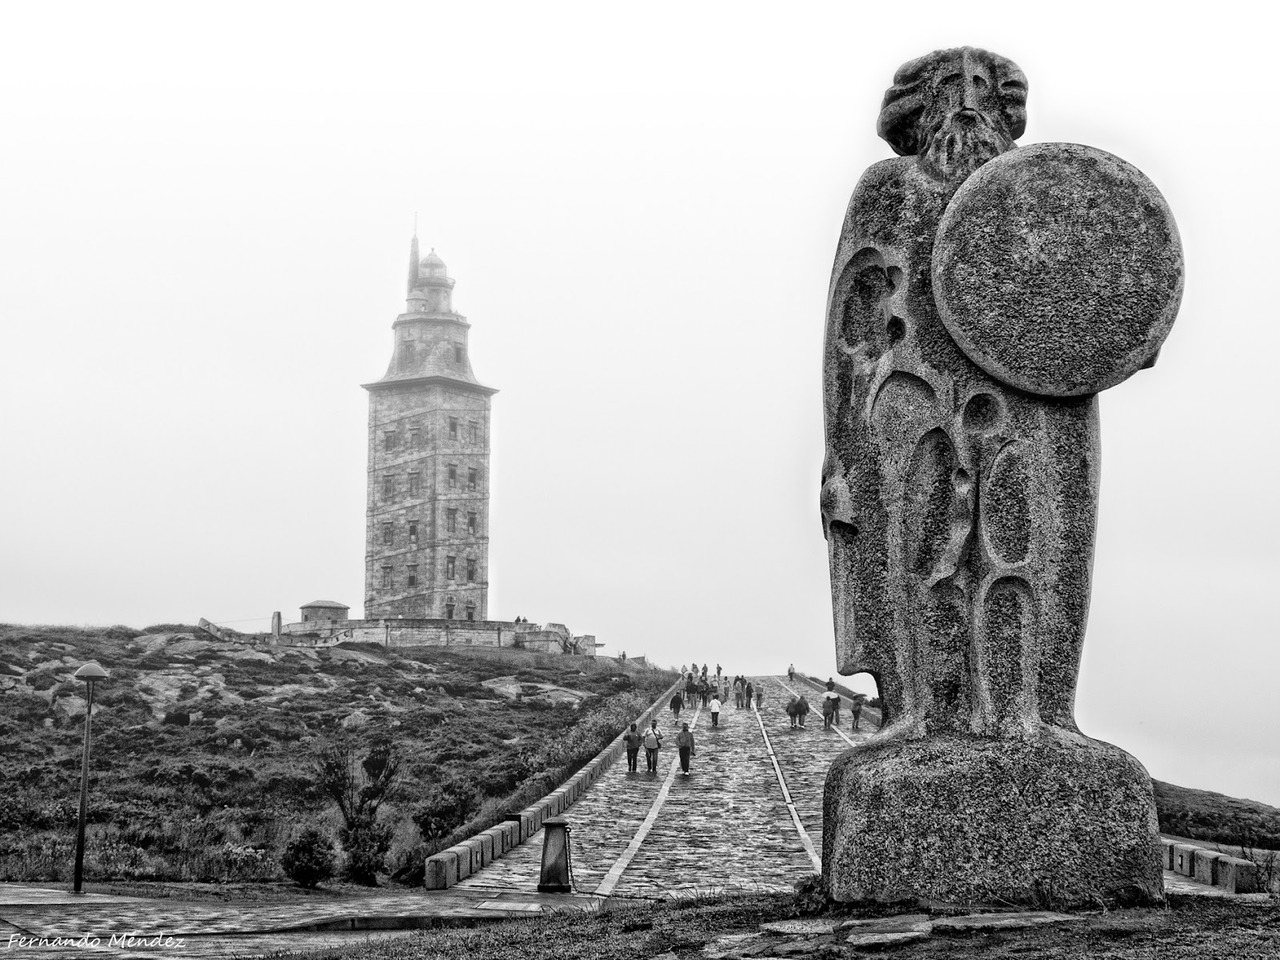 Even older than the Hagia Sophia is the second century Torre de Hércules in Galicia, Spain. Excluding tombs (which, in a sense, are always occupied) perhaps only one or two other continually used buildings in the world are old as this lighthouse. (photograph by Fernando Méndez)